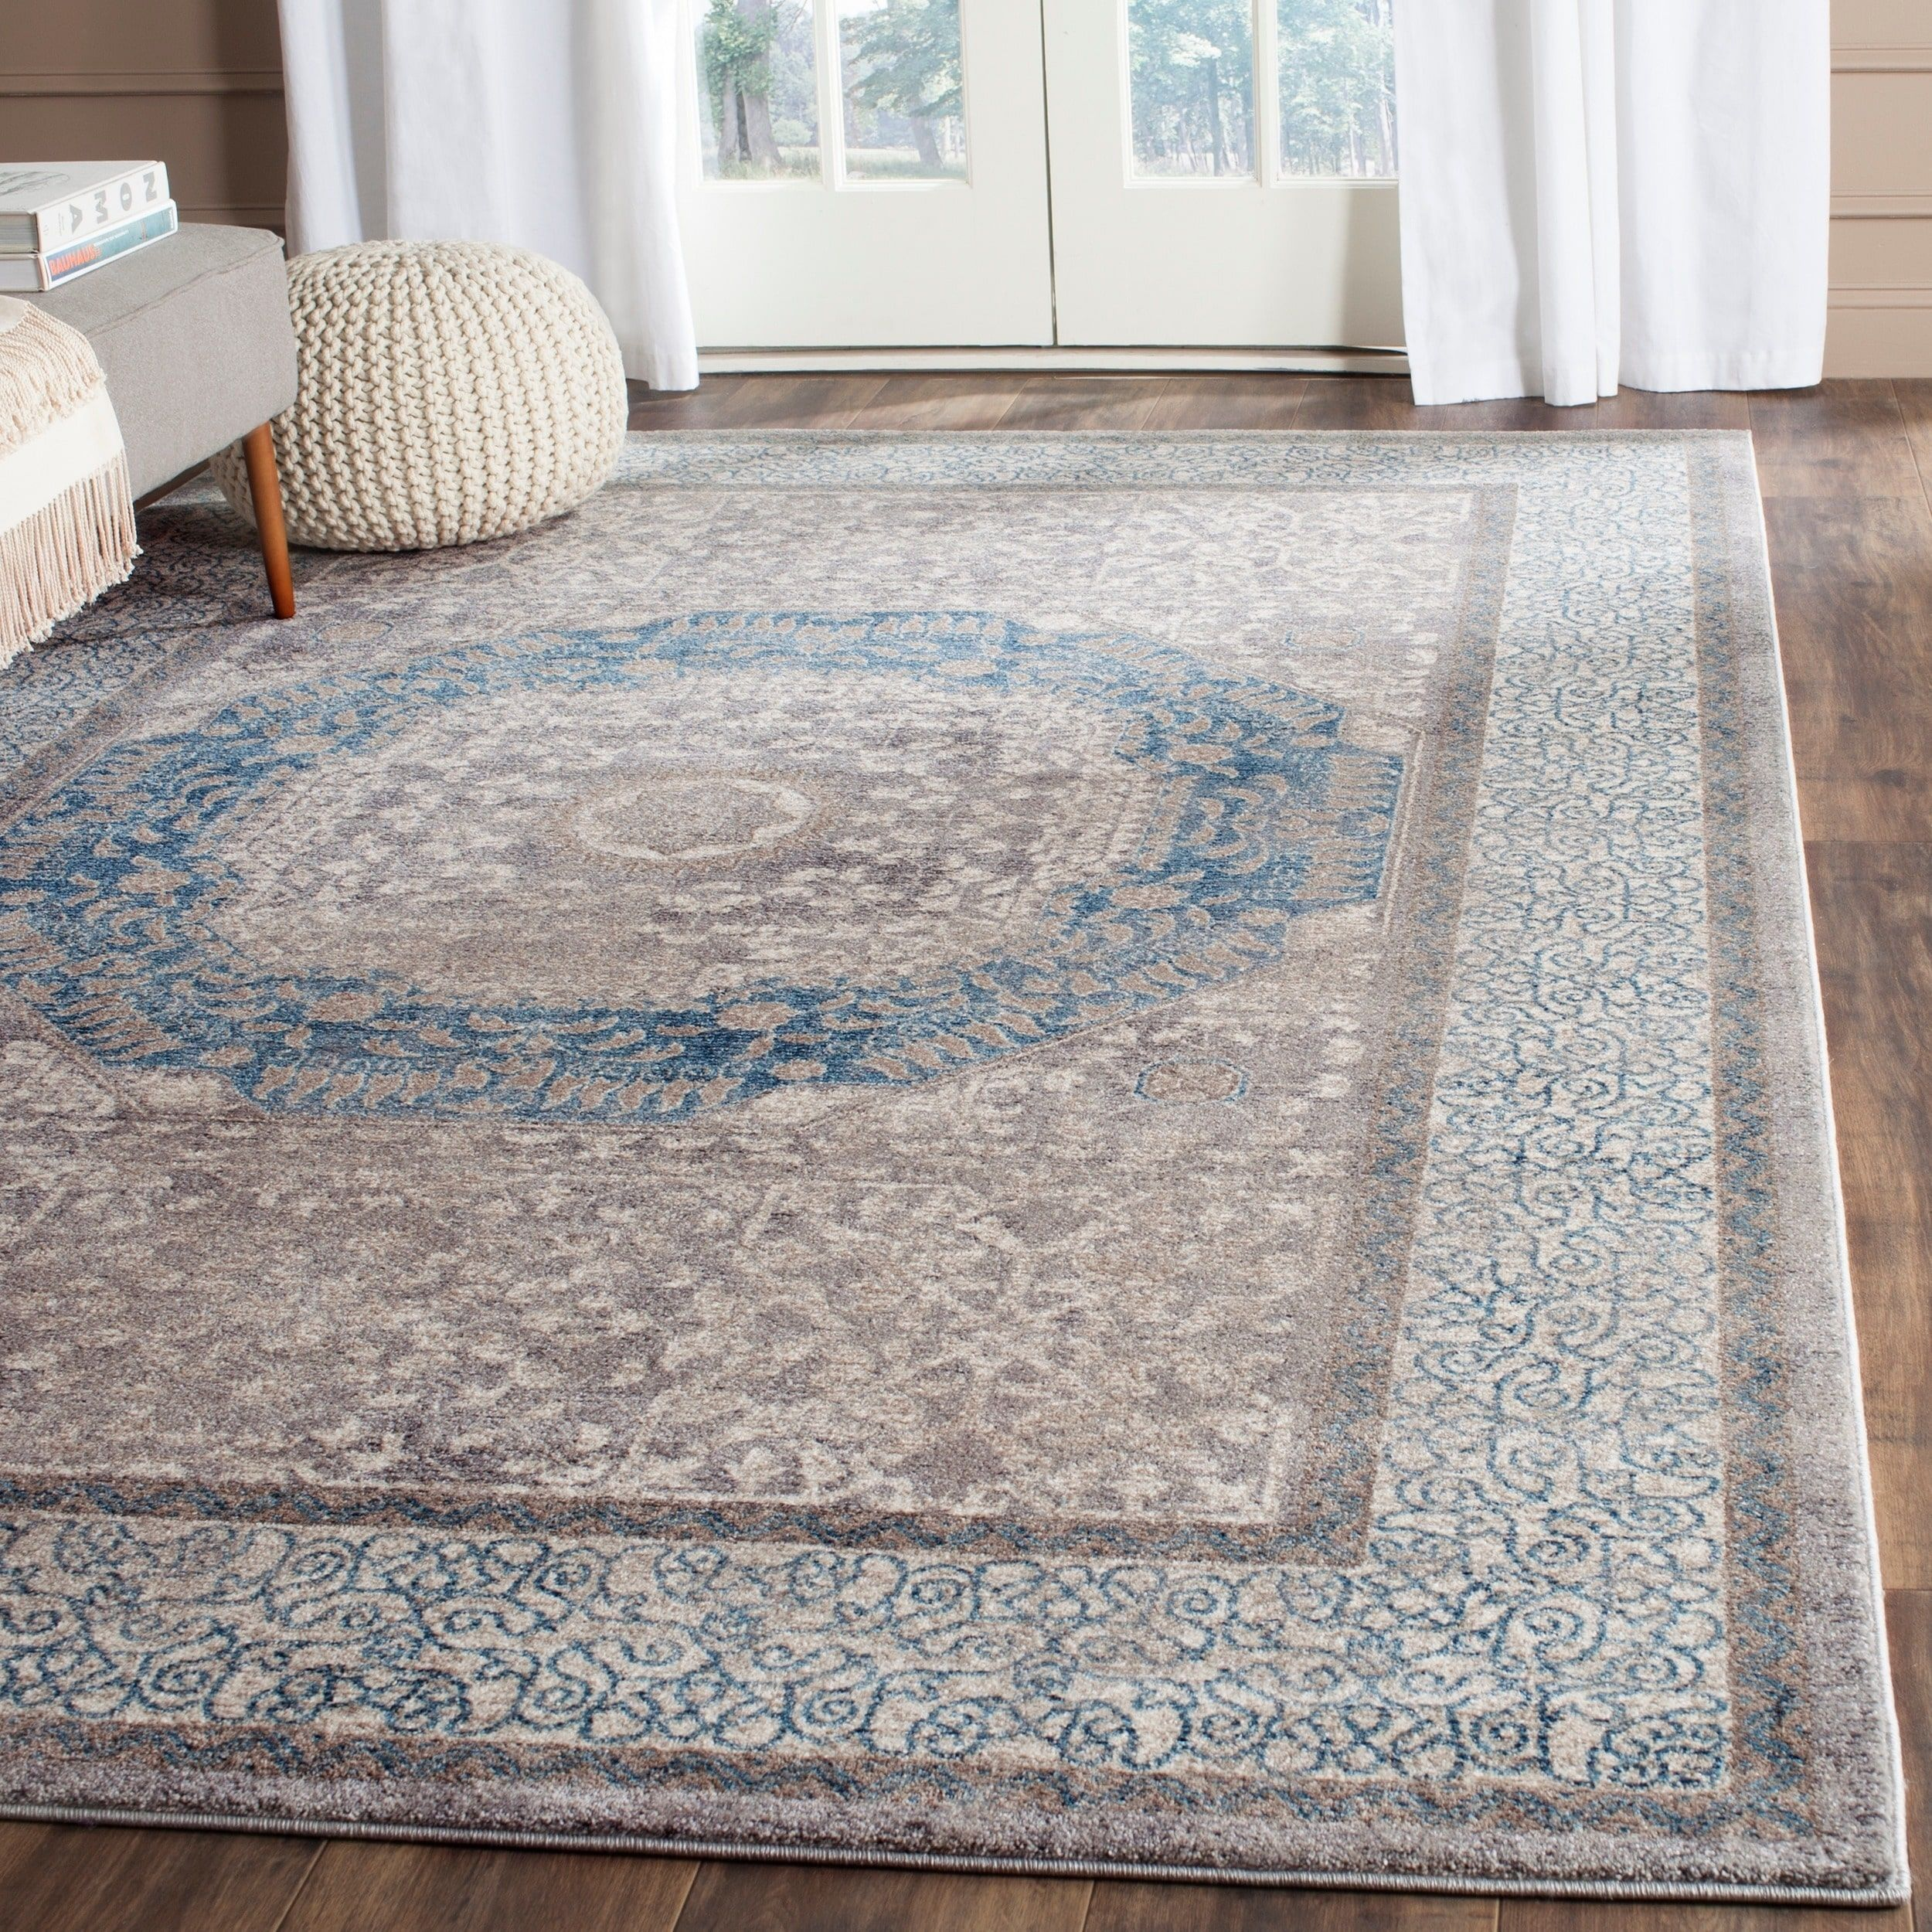 Indoor 7x9 10x14 Rugs Use Large Area To Bring A New Mood An Old Room Or Plan Your Decor Around Rug You Love